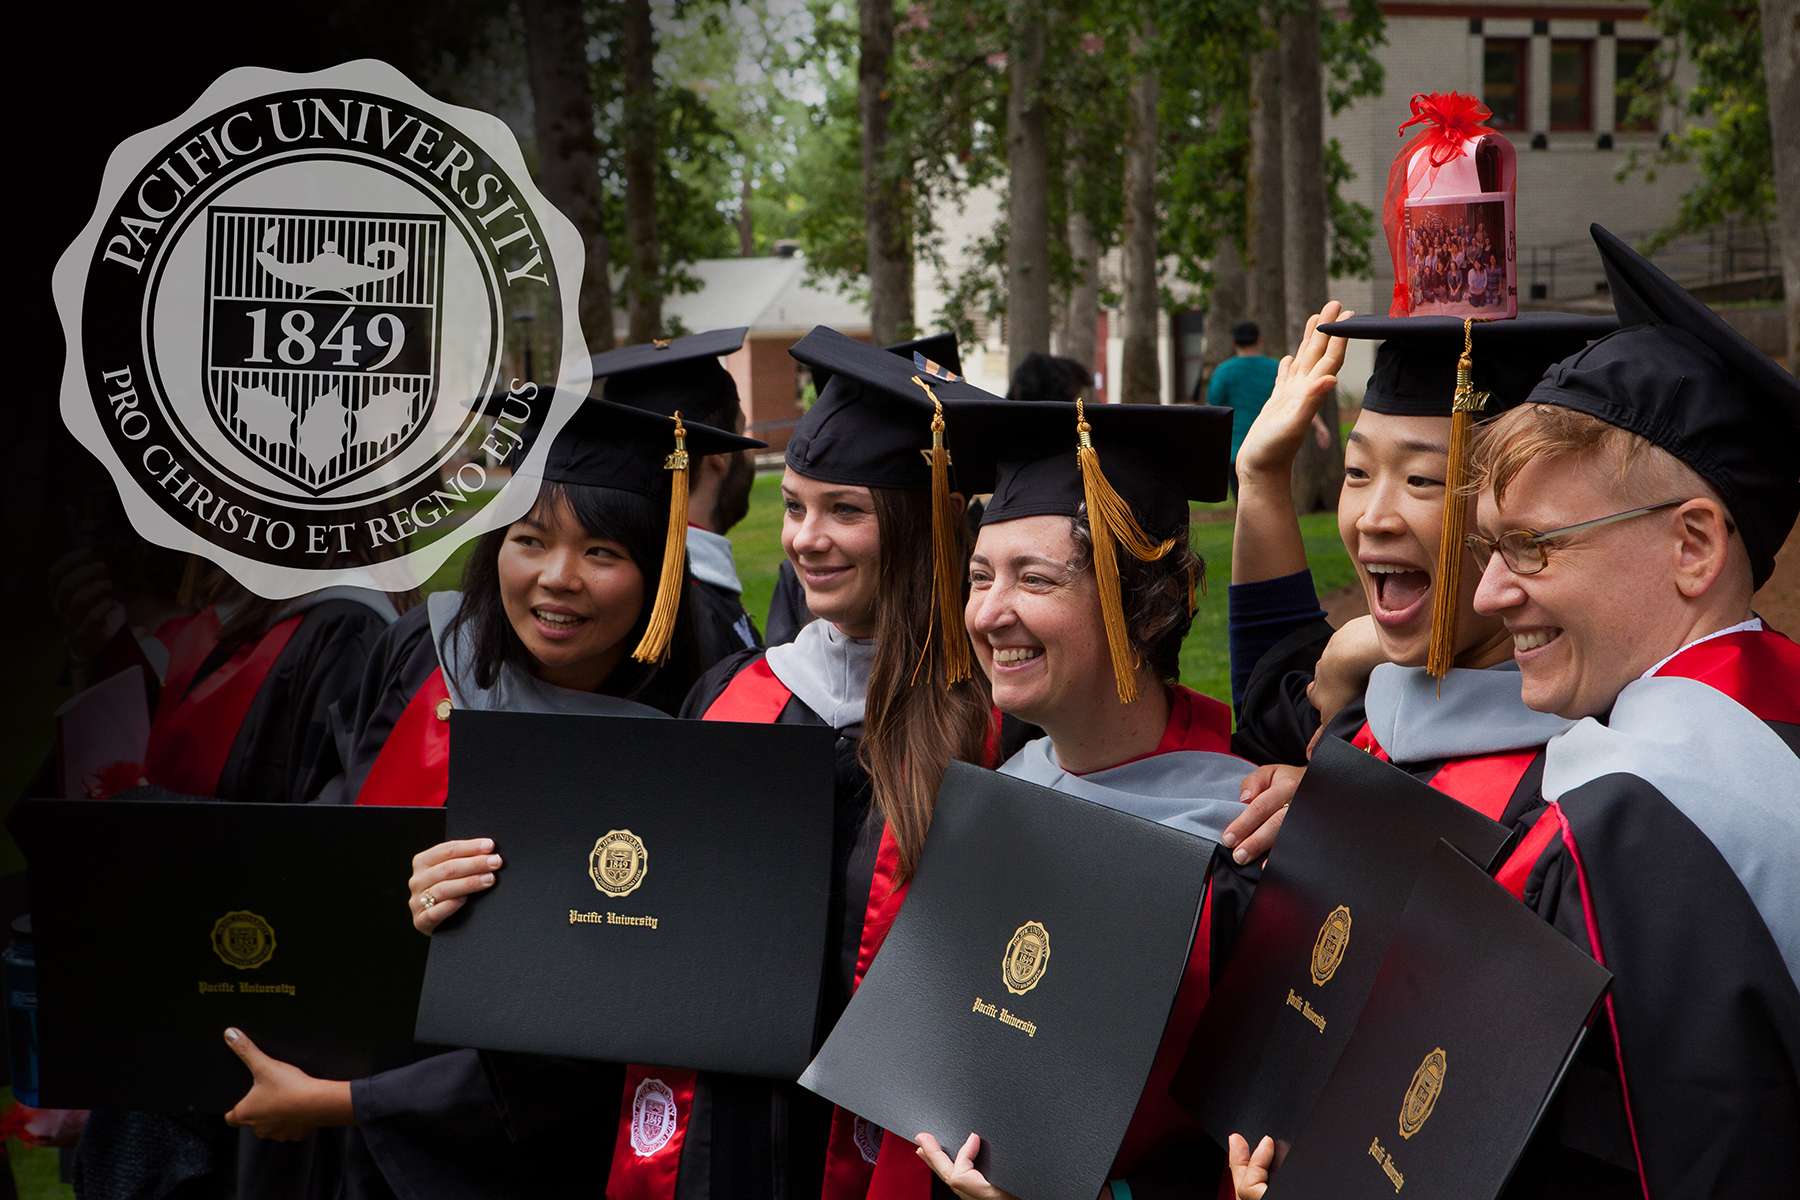 University Seal overlay on a group of happy grads holding diplomas with the seal